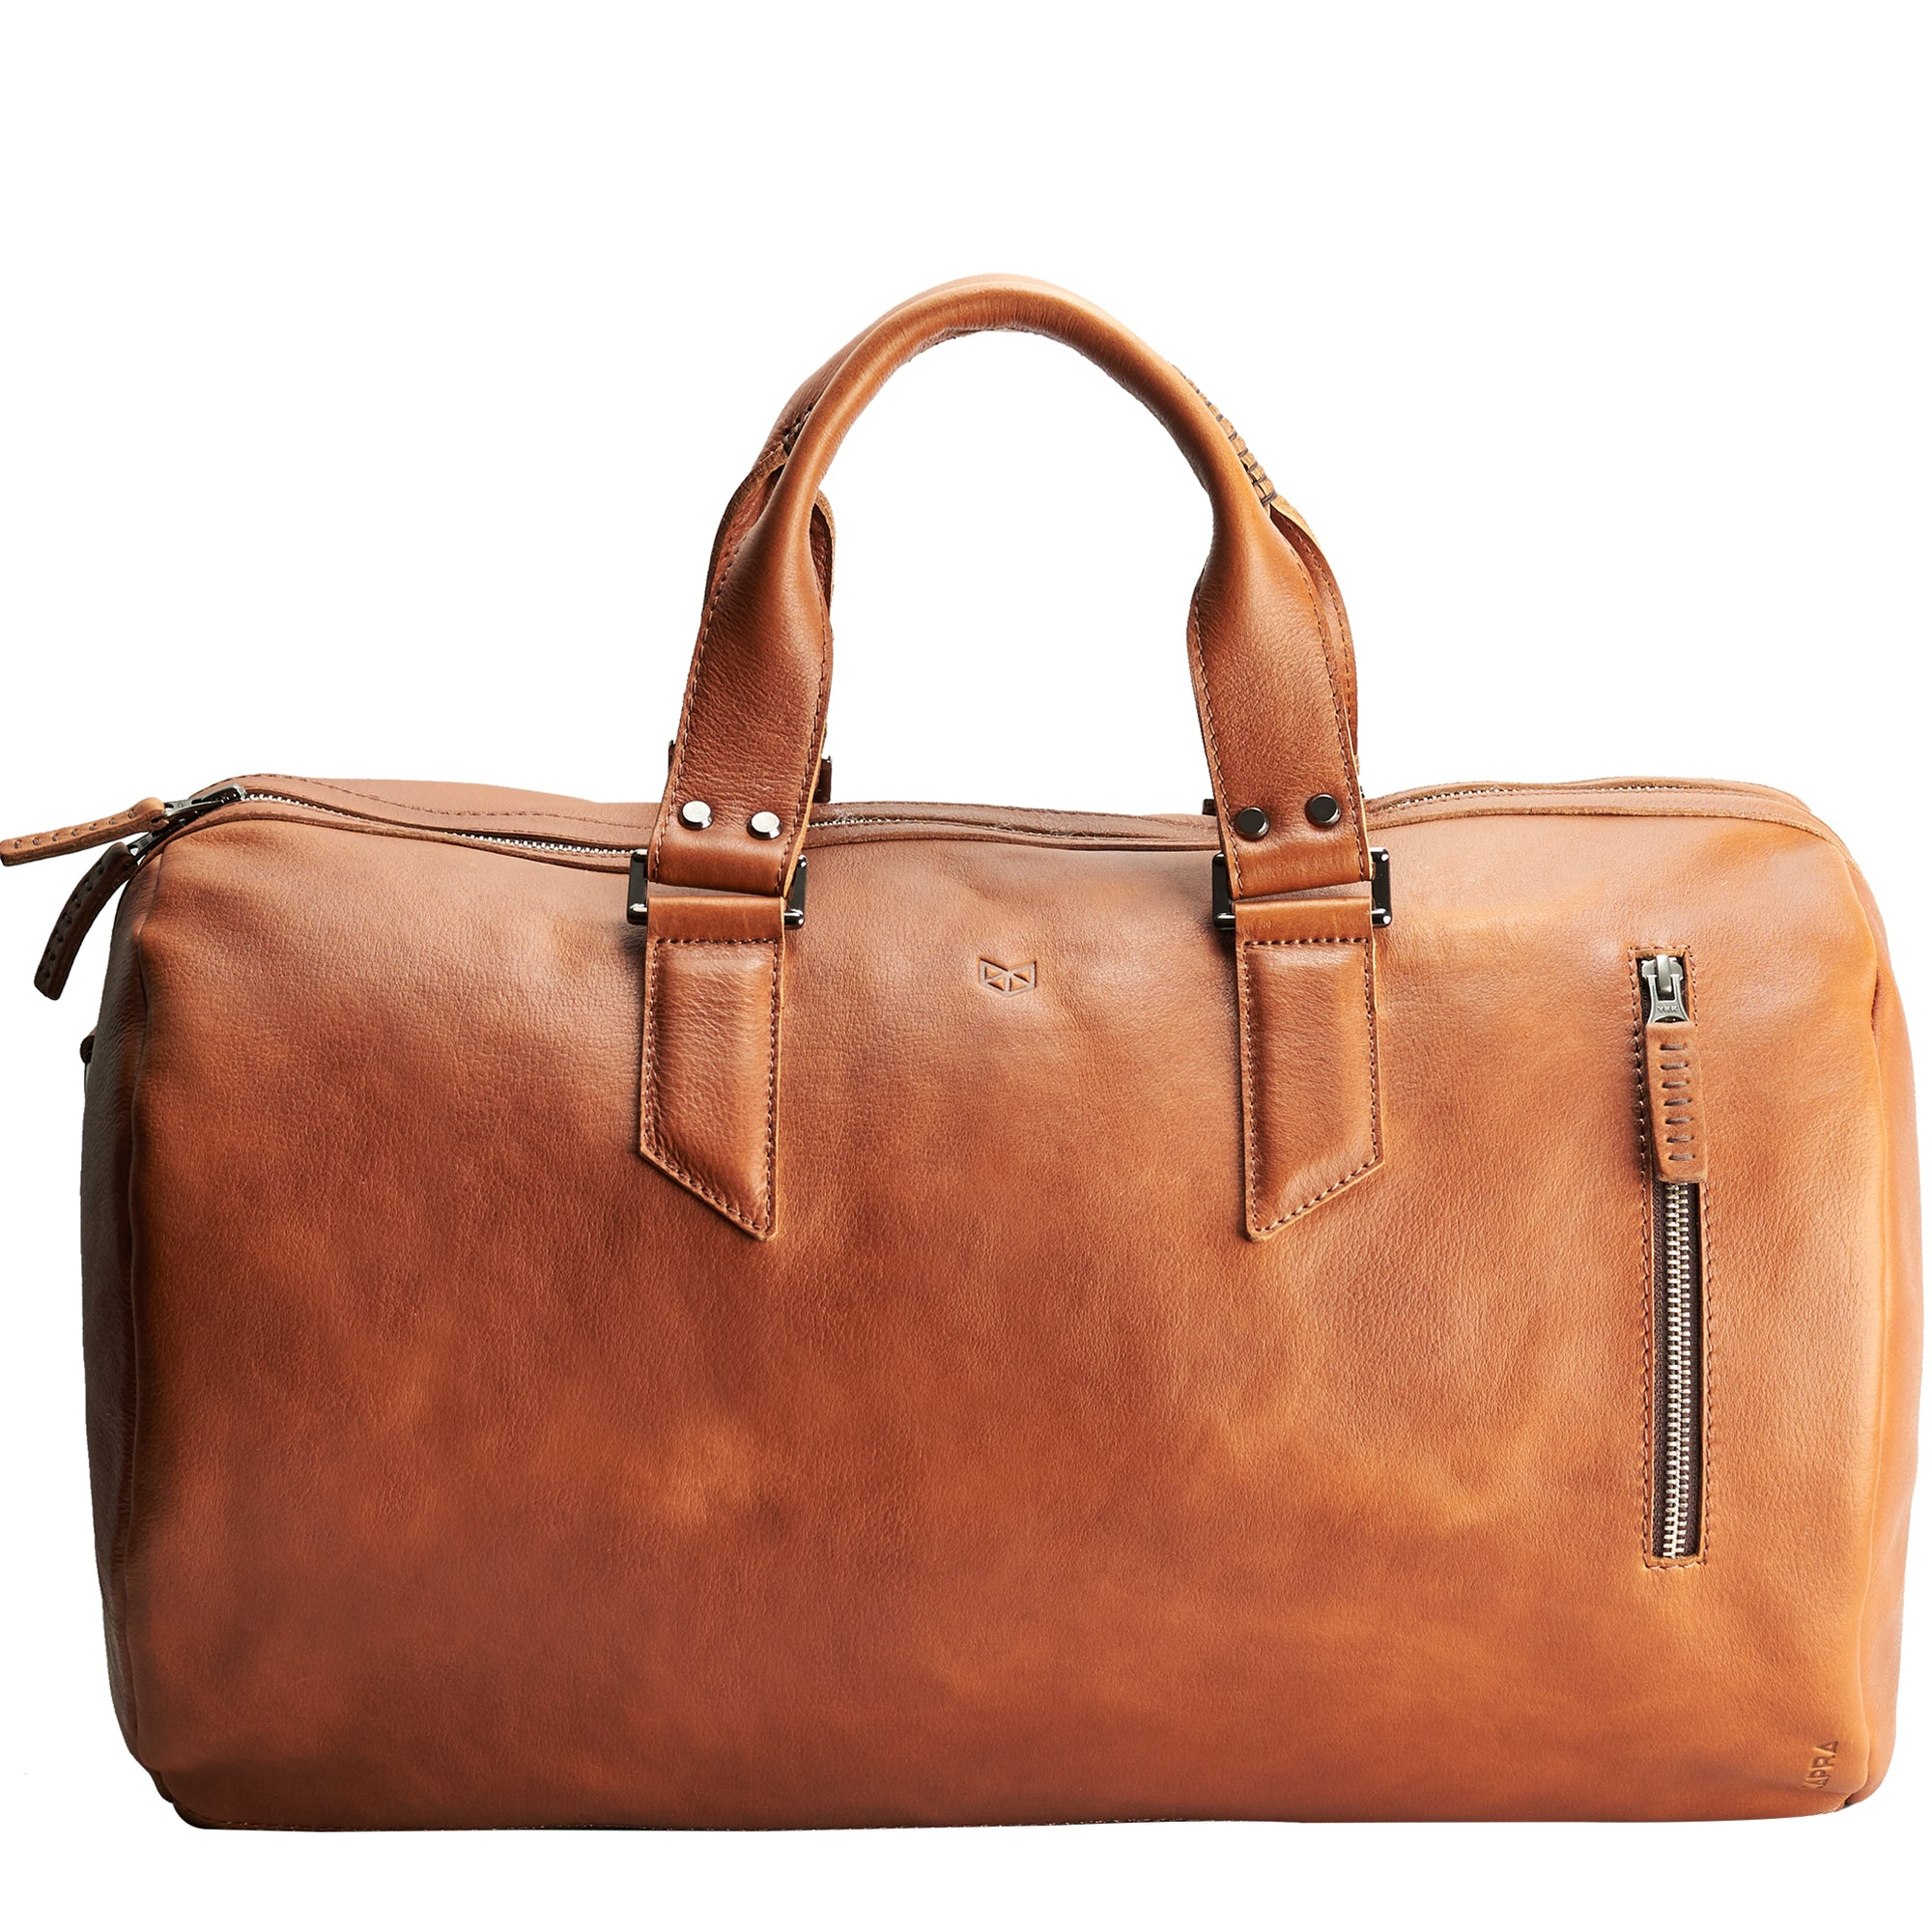 Handmade Tan brown leather duffle bag for men. Mens designer shoulder bag